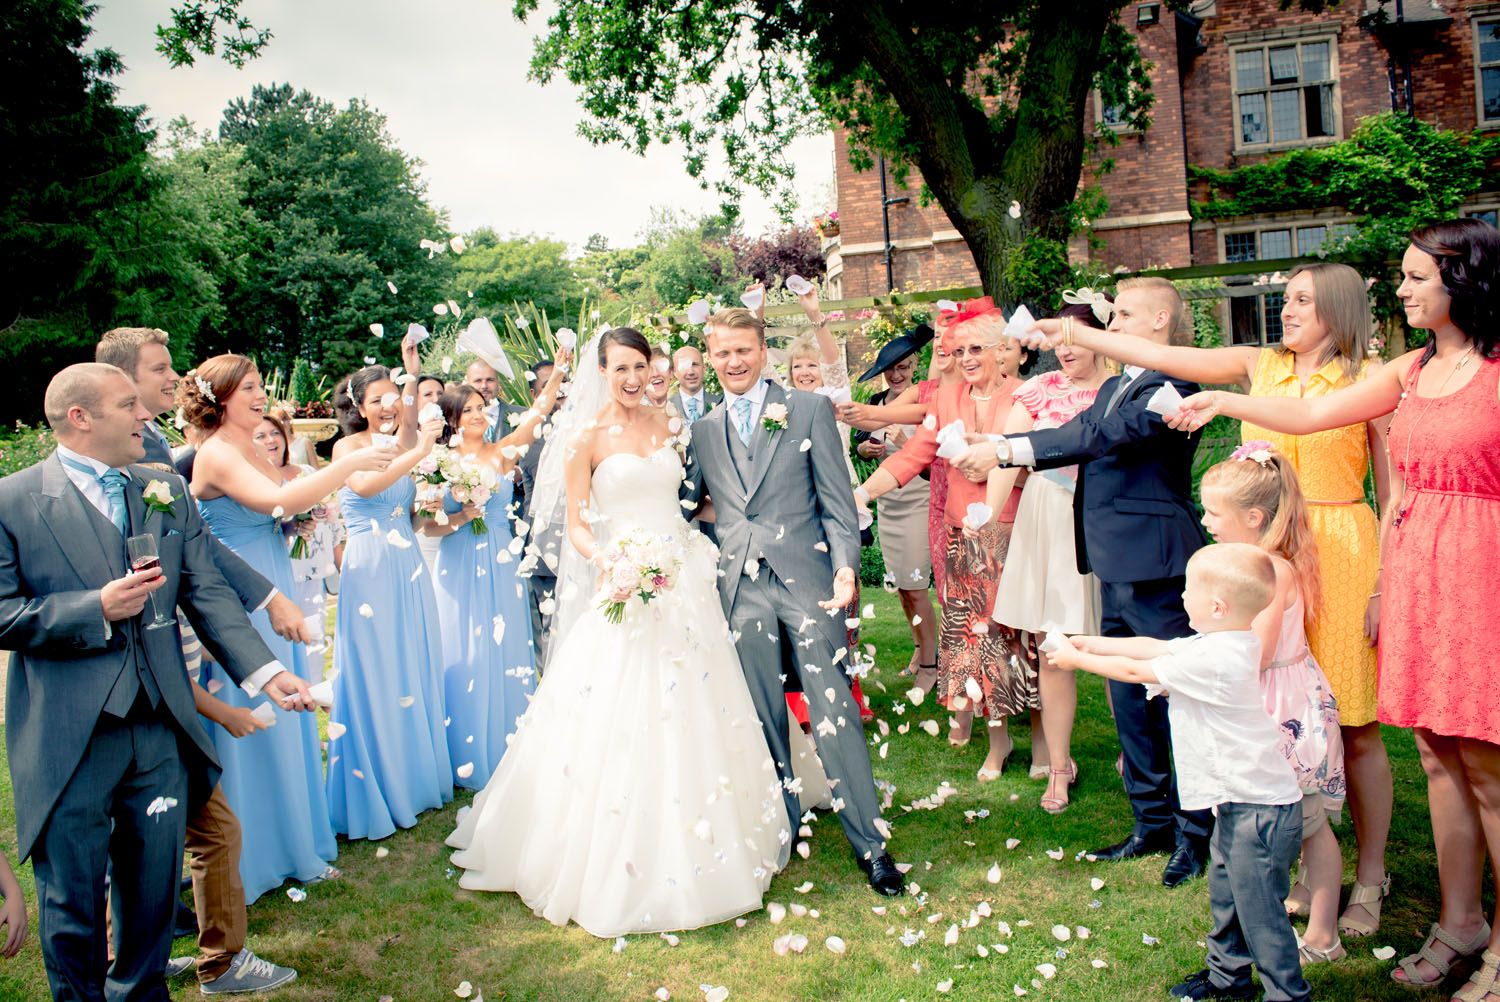 Bride and Groom being scattered in confetti by their gusts.